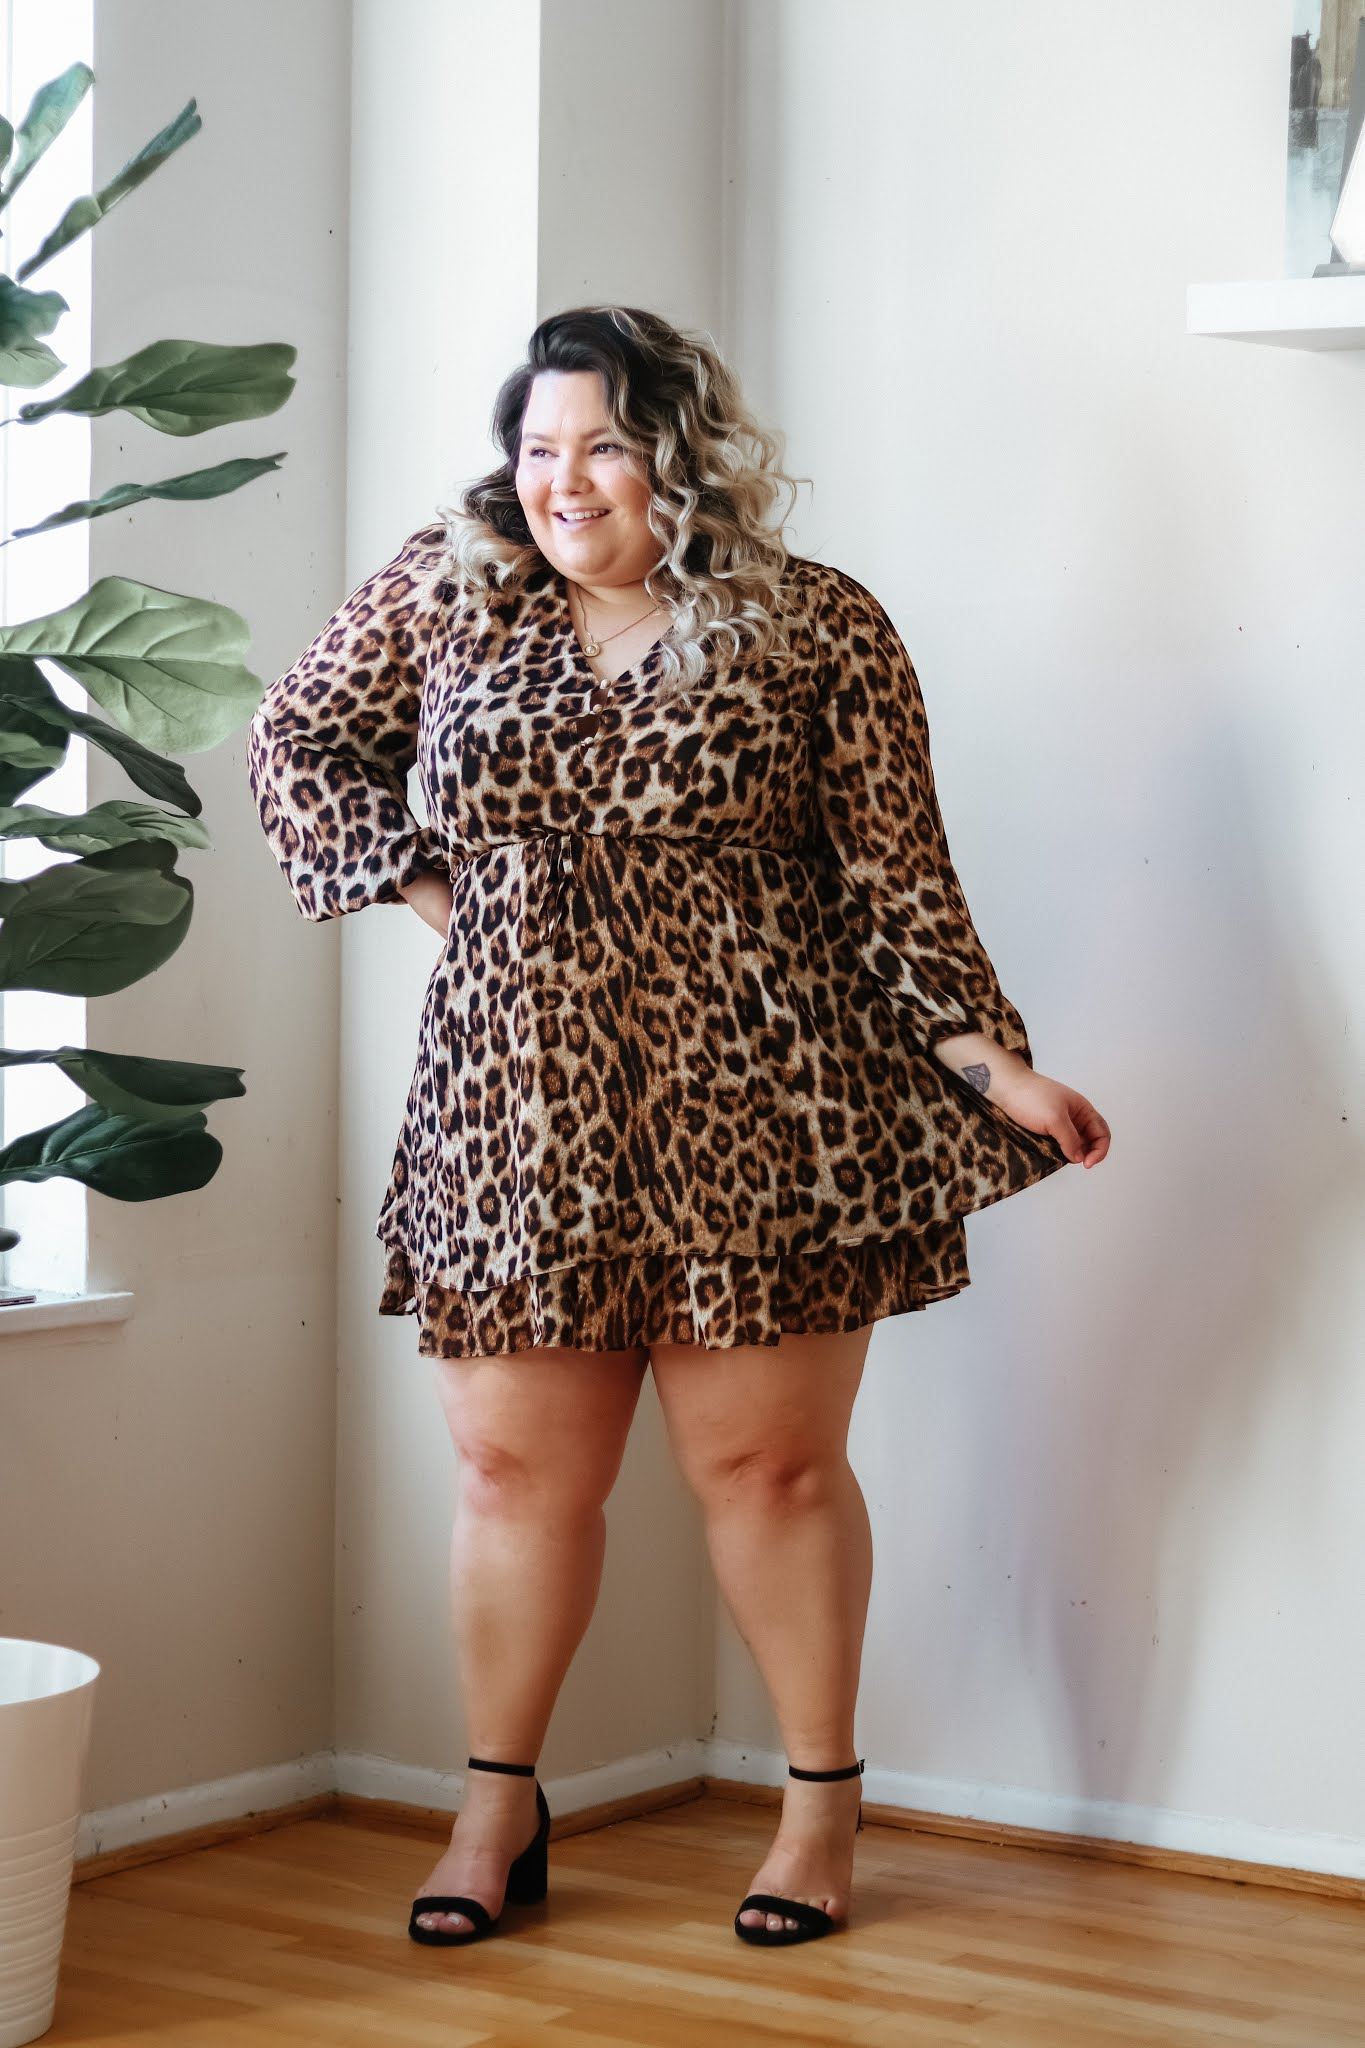 Chicago Plus Size Petite Fashion Blogger, influencer, and model Natalie in the City Craig reviews Common Assembly